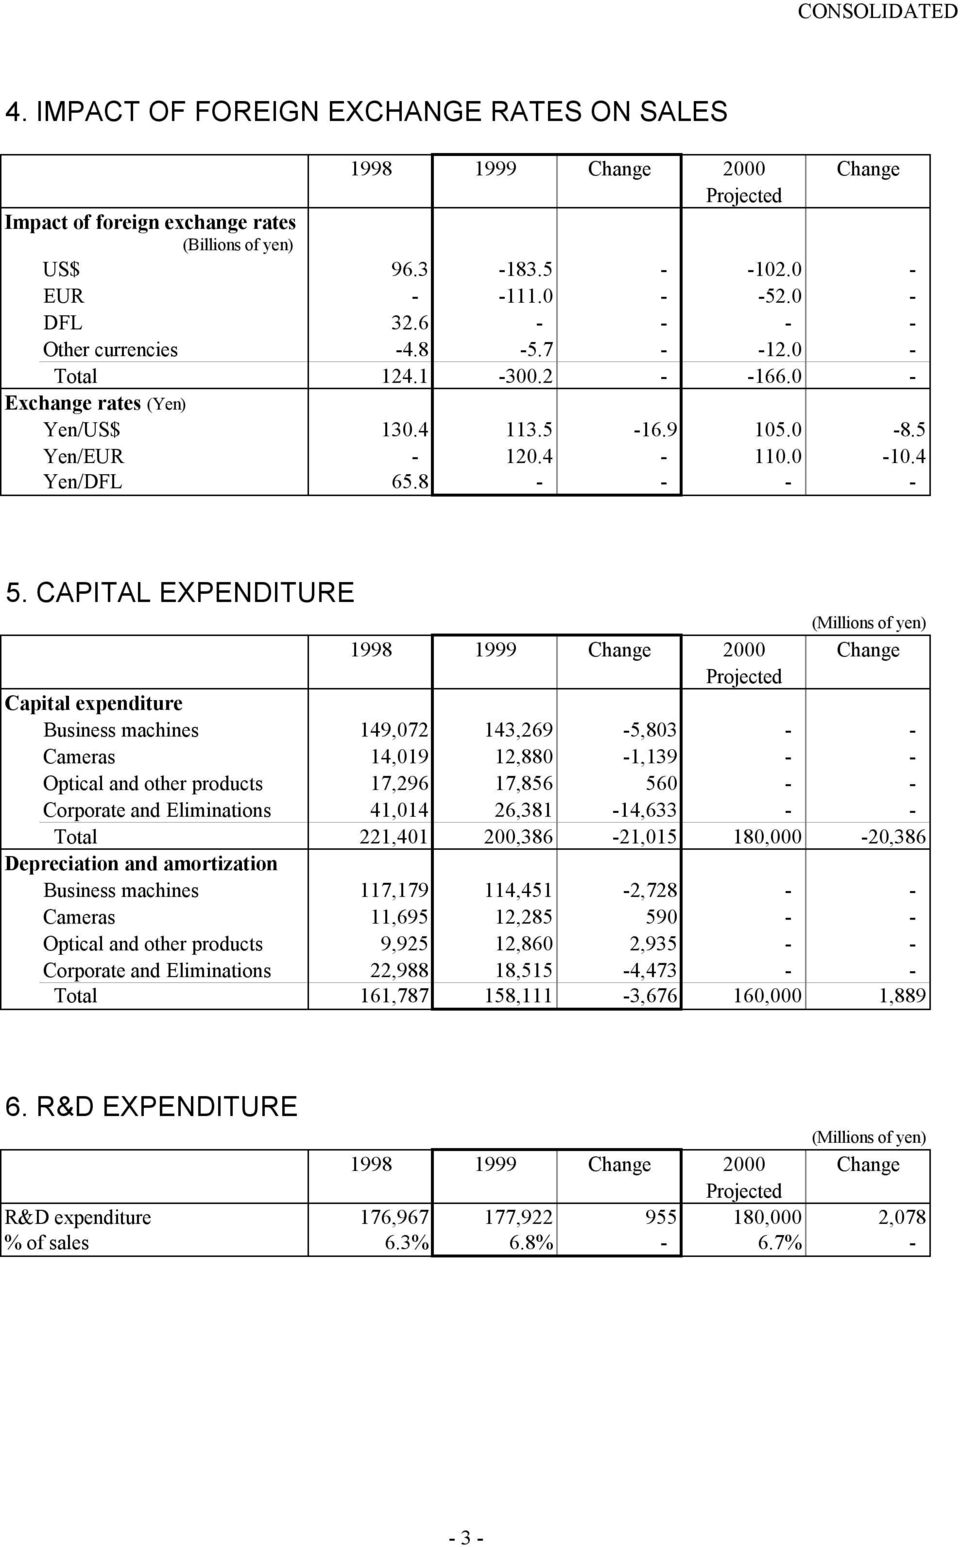 CAPITAL EXPENDITURE (Millions of yen) 1998 1999 Change 2000 Change Projected Capital expenditure Business machines 149,072 143,269-5,803 - - Cameras 14,019 12,880-1,139 - - Optical and other products